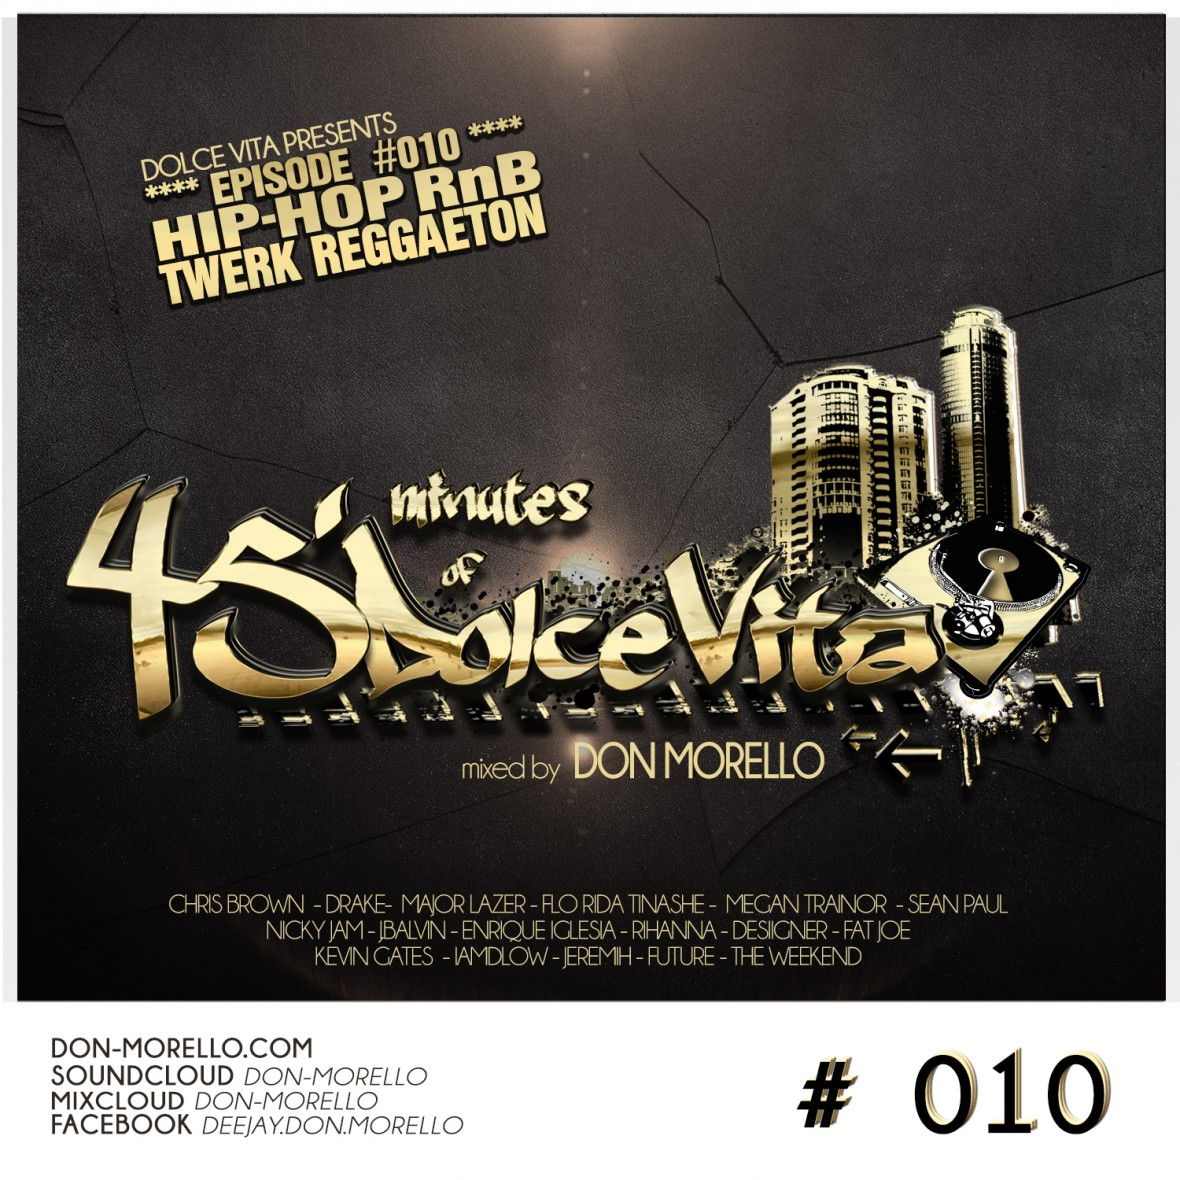 45'minutes of Dolce Vita #010 mixed by Don Morello